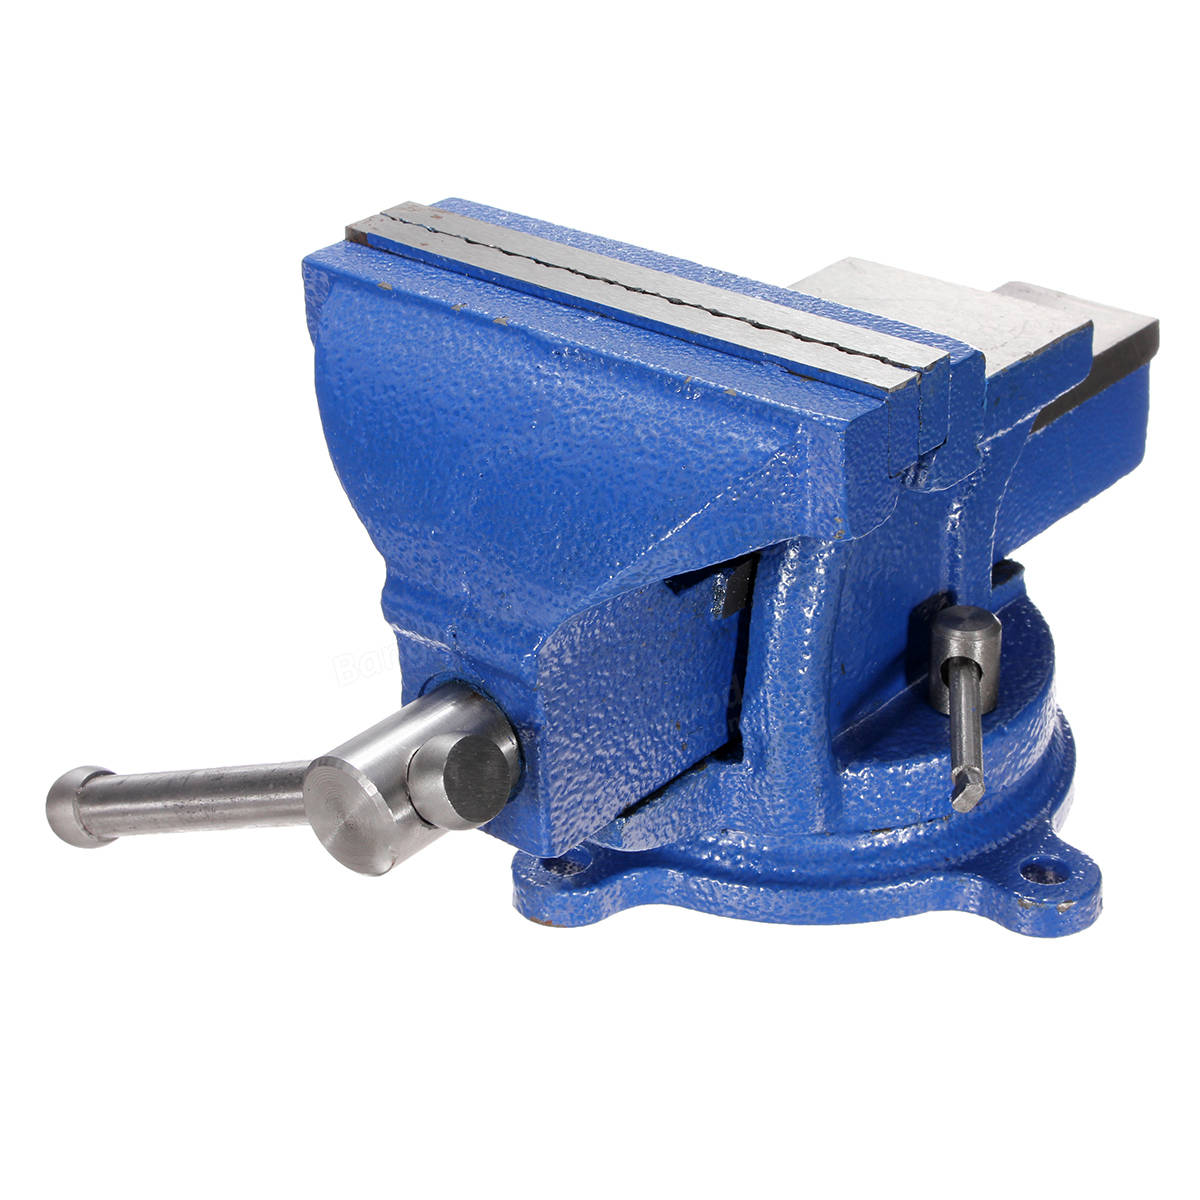 5 Inch Bench Vise With Anvil Swivel Locking Base Table Top Clamp Heavy Duty Steel Sale